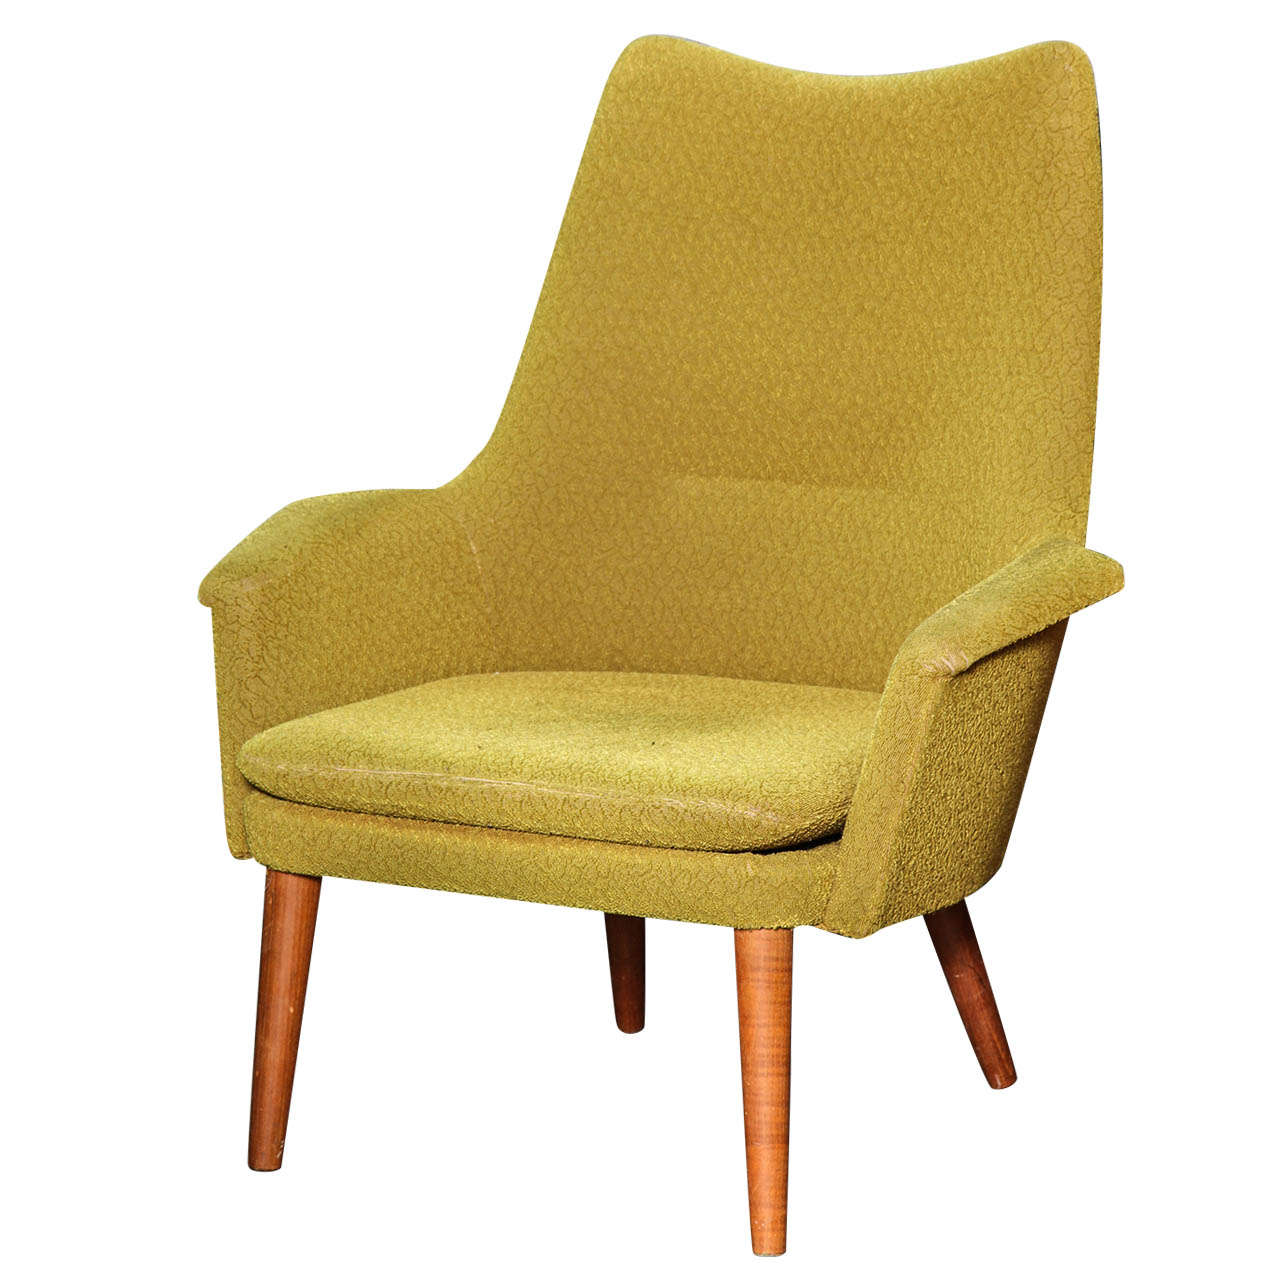 Image of: Vintage Danish Lounge Chair